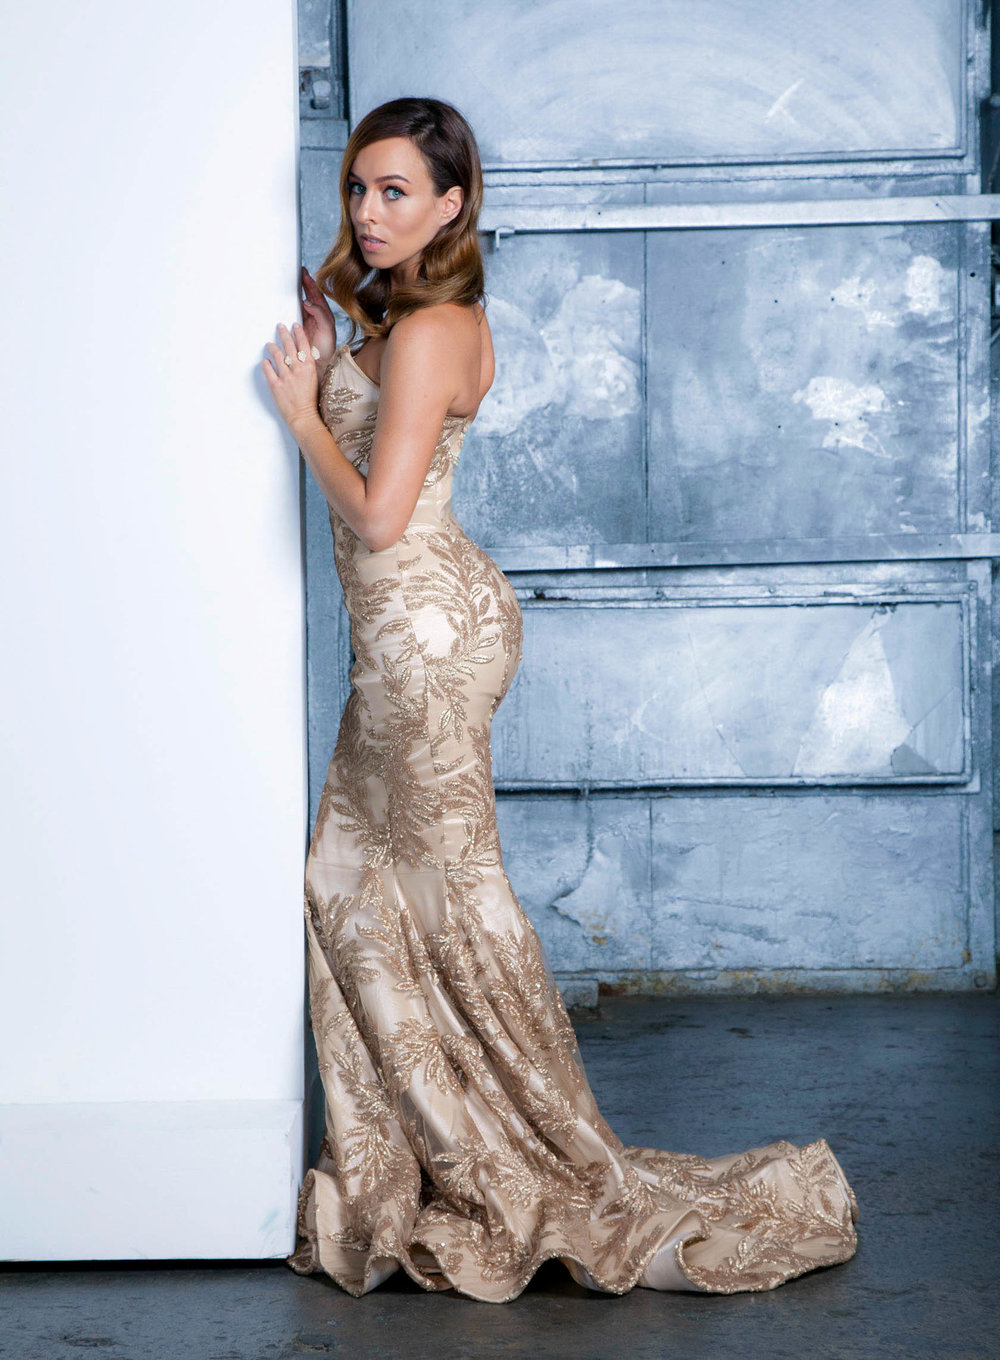 Sydne-Style-shows-the-best-gown-shapes-for-curves-in-mermaid-ballgown.jpg